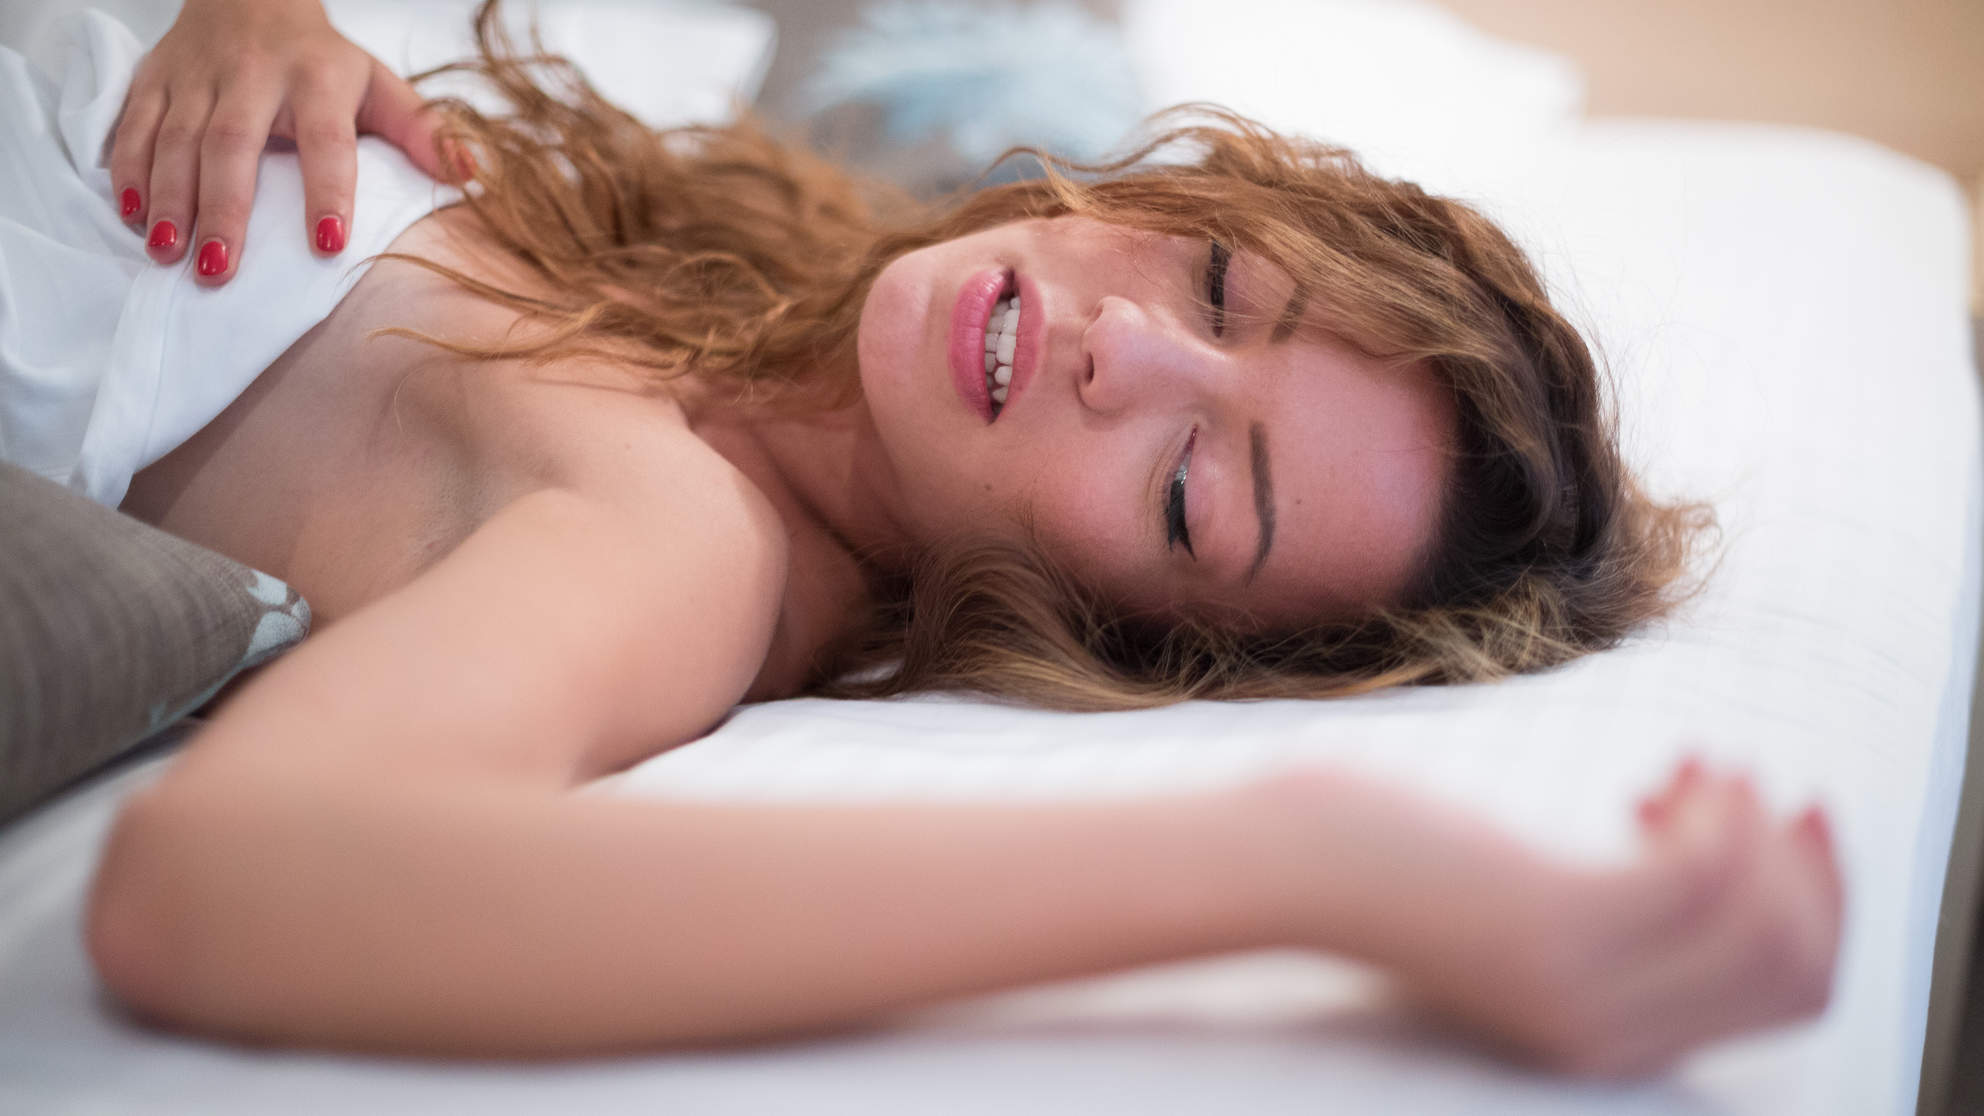 We Asked 8 Women What an Orgasm Feels Like to Them—Here's What They Told Us